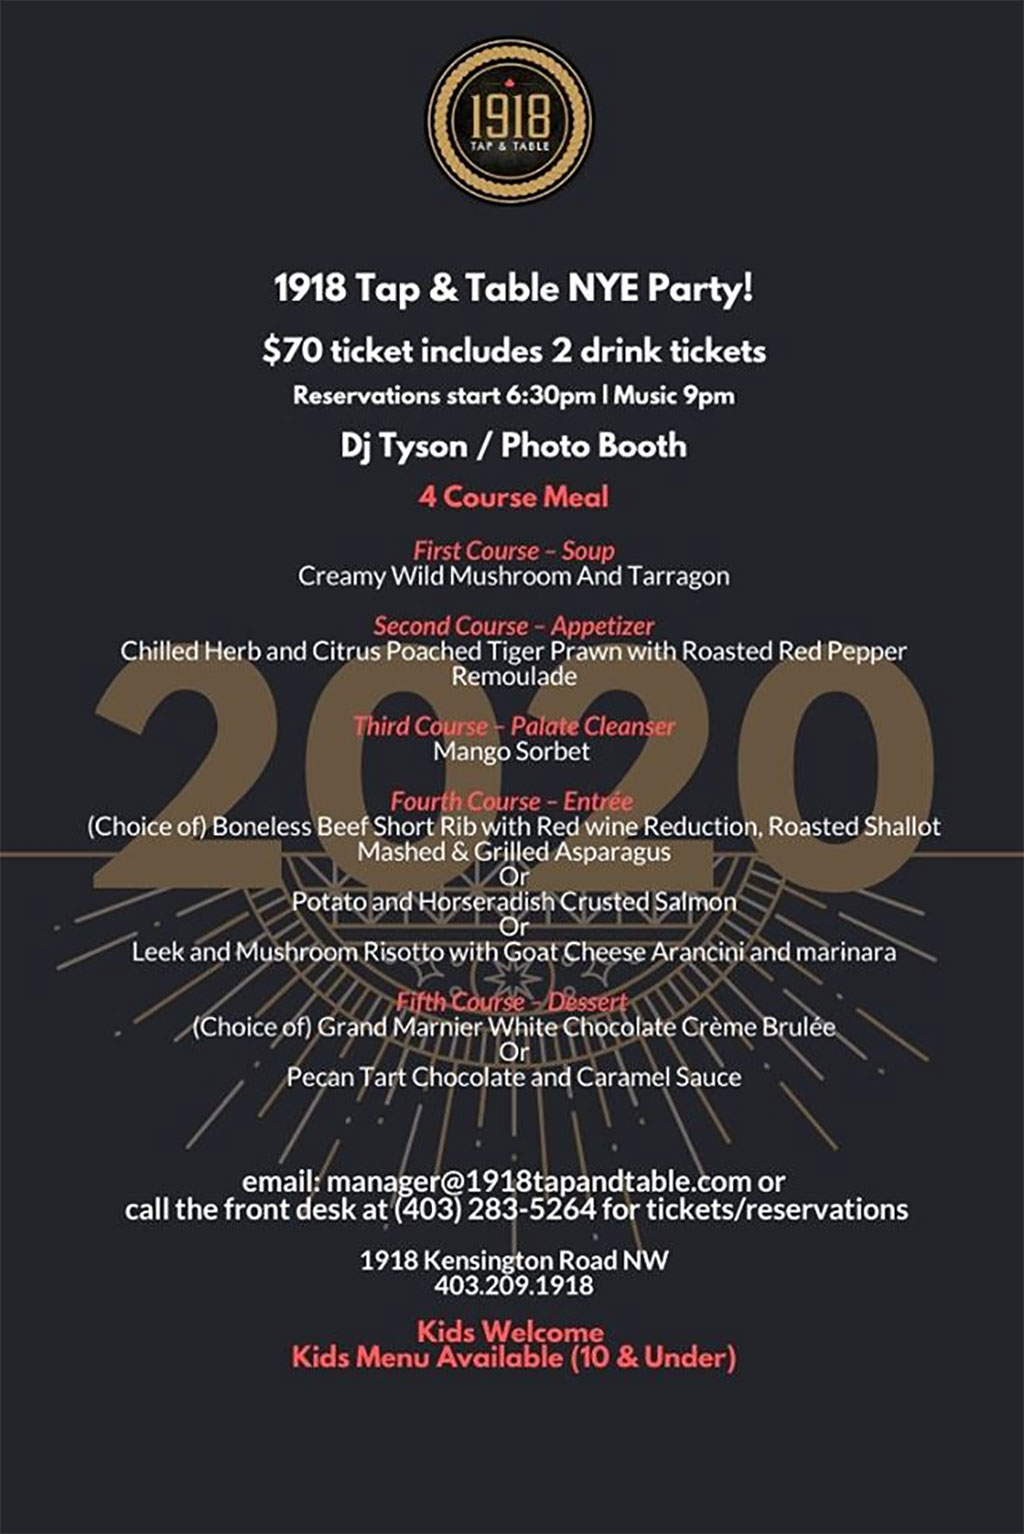 Things To do in Calgary for New Years Eve 2020 1918 Tap and Table